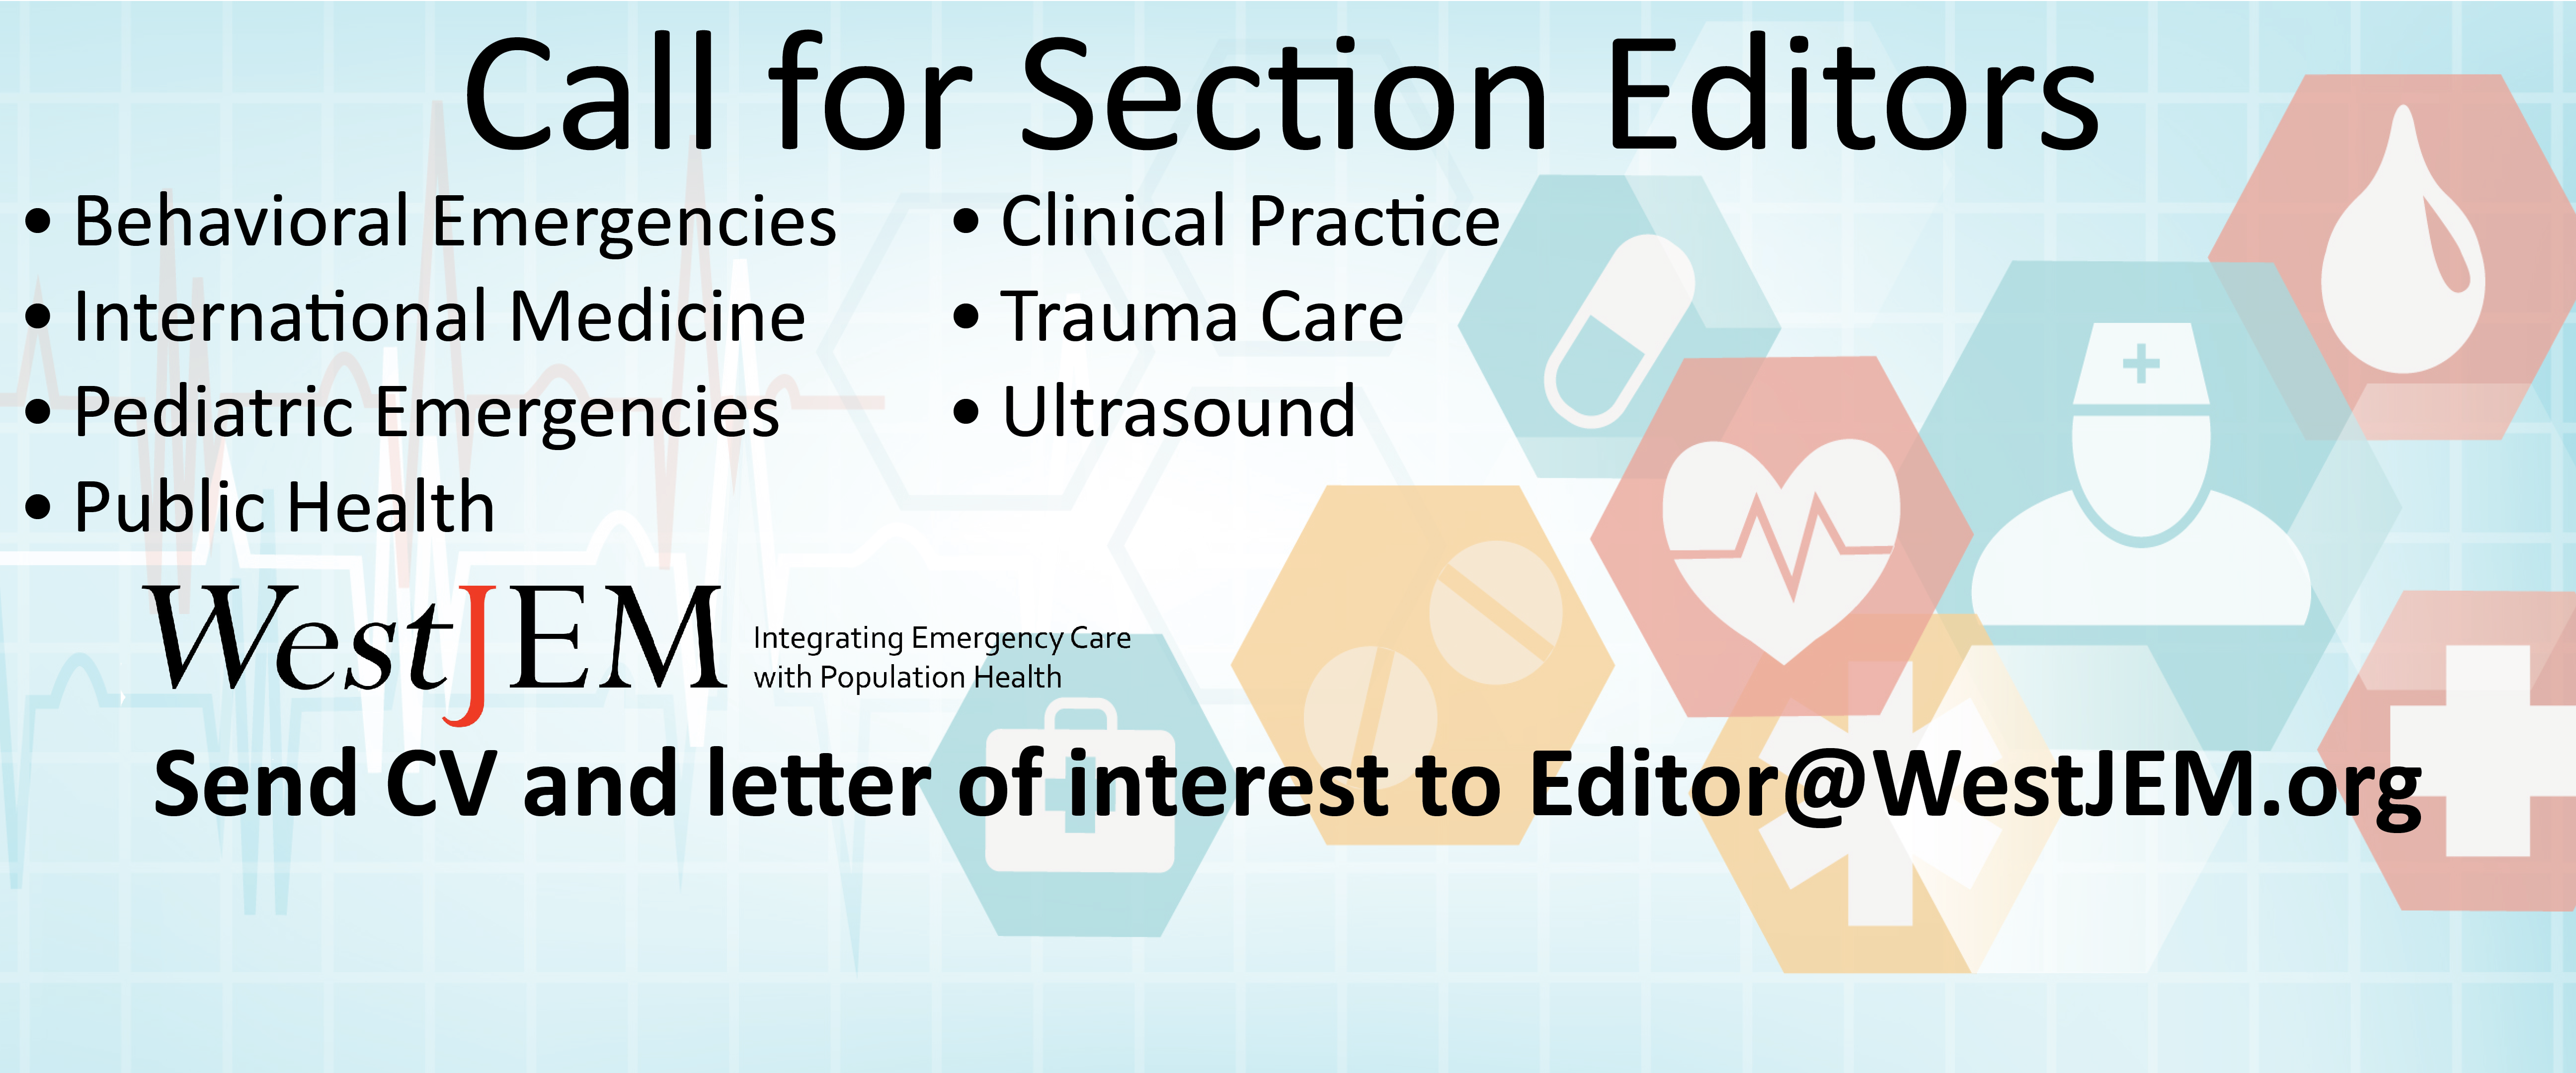 Call-for-Section-Editors-No-Health-Equity-and-Cardiac-Care-3